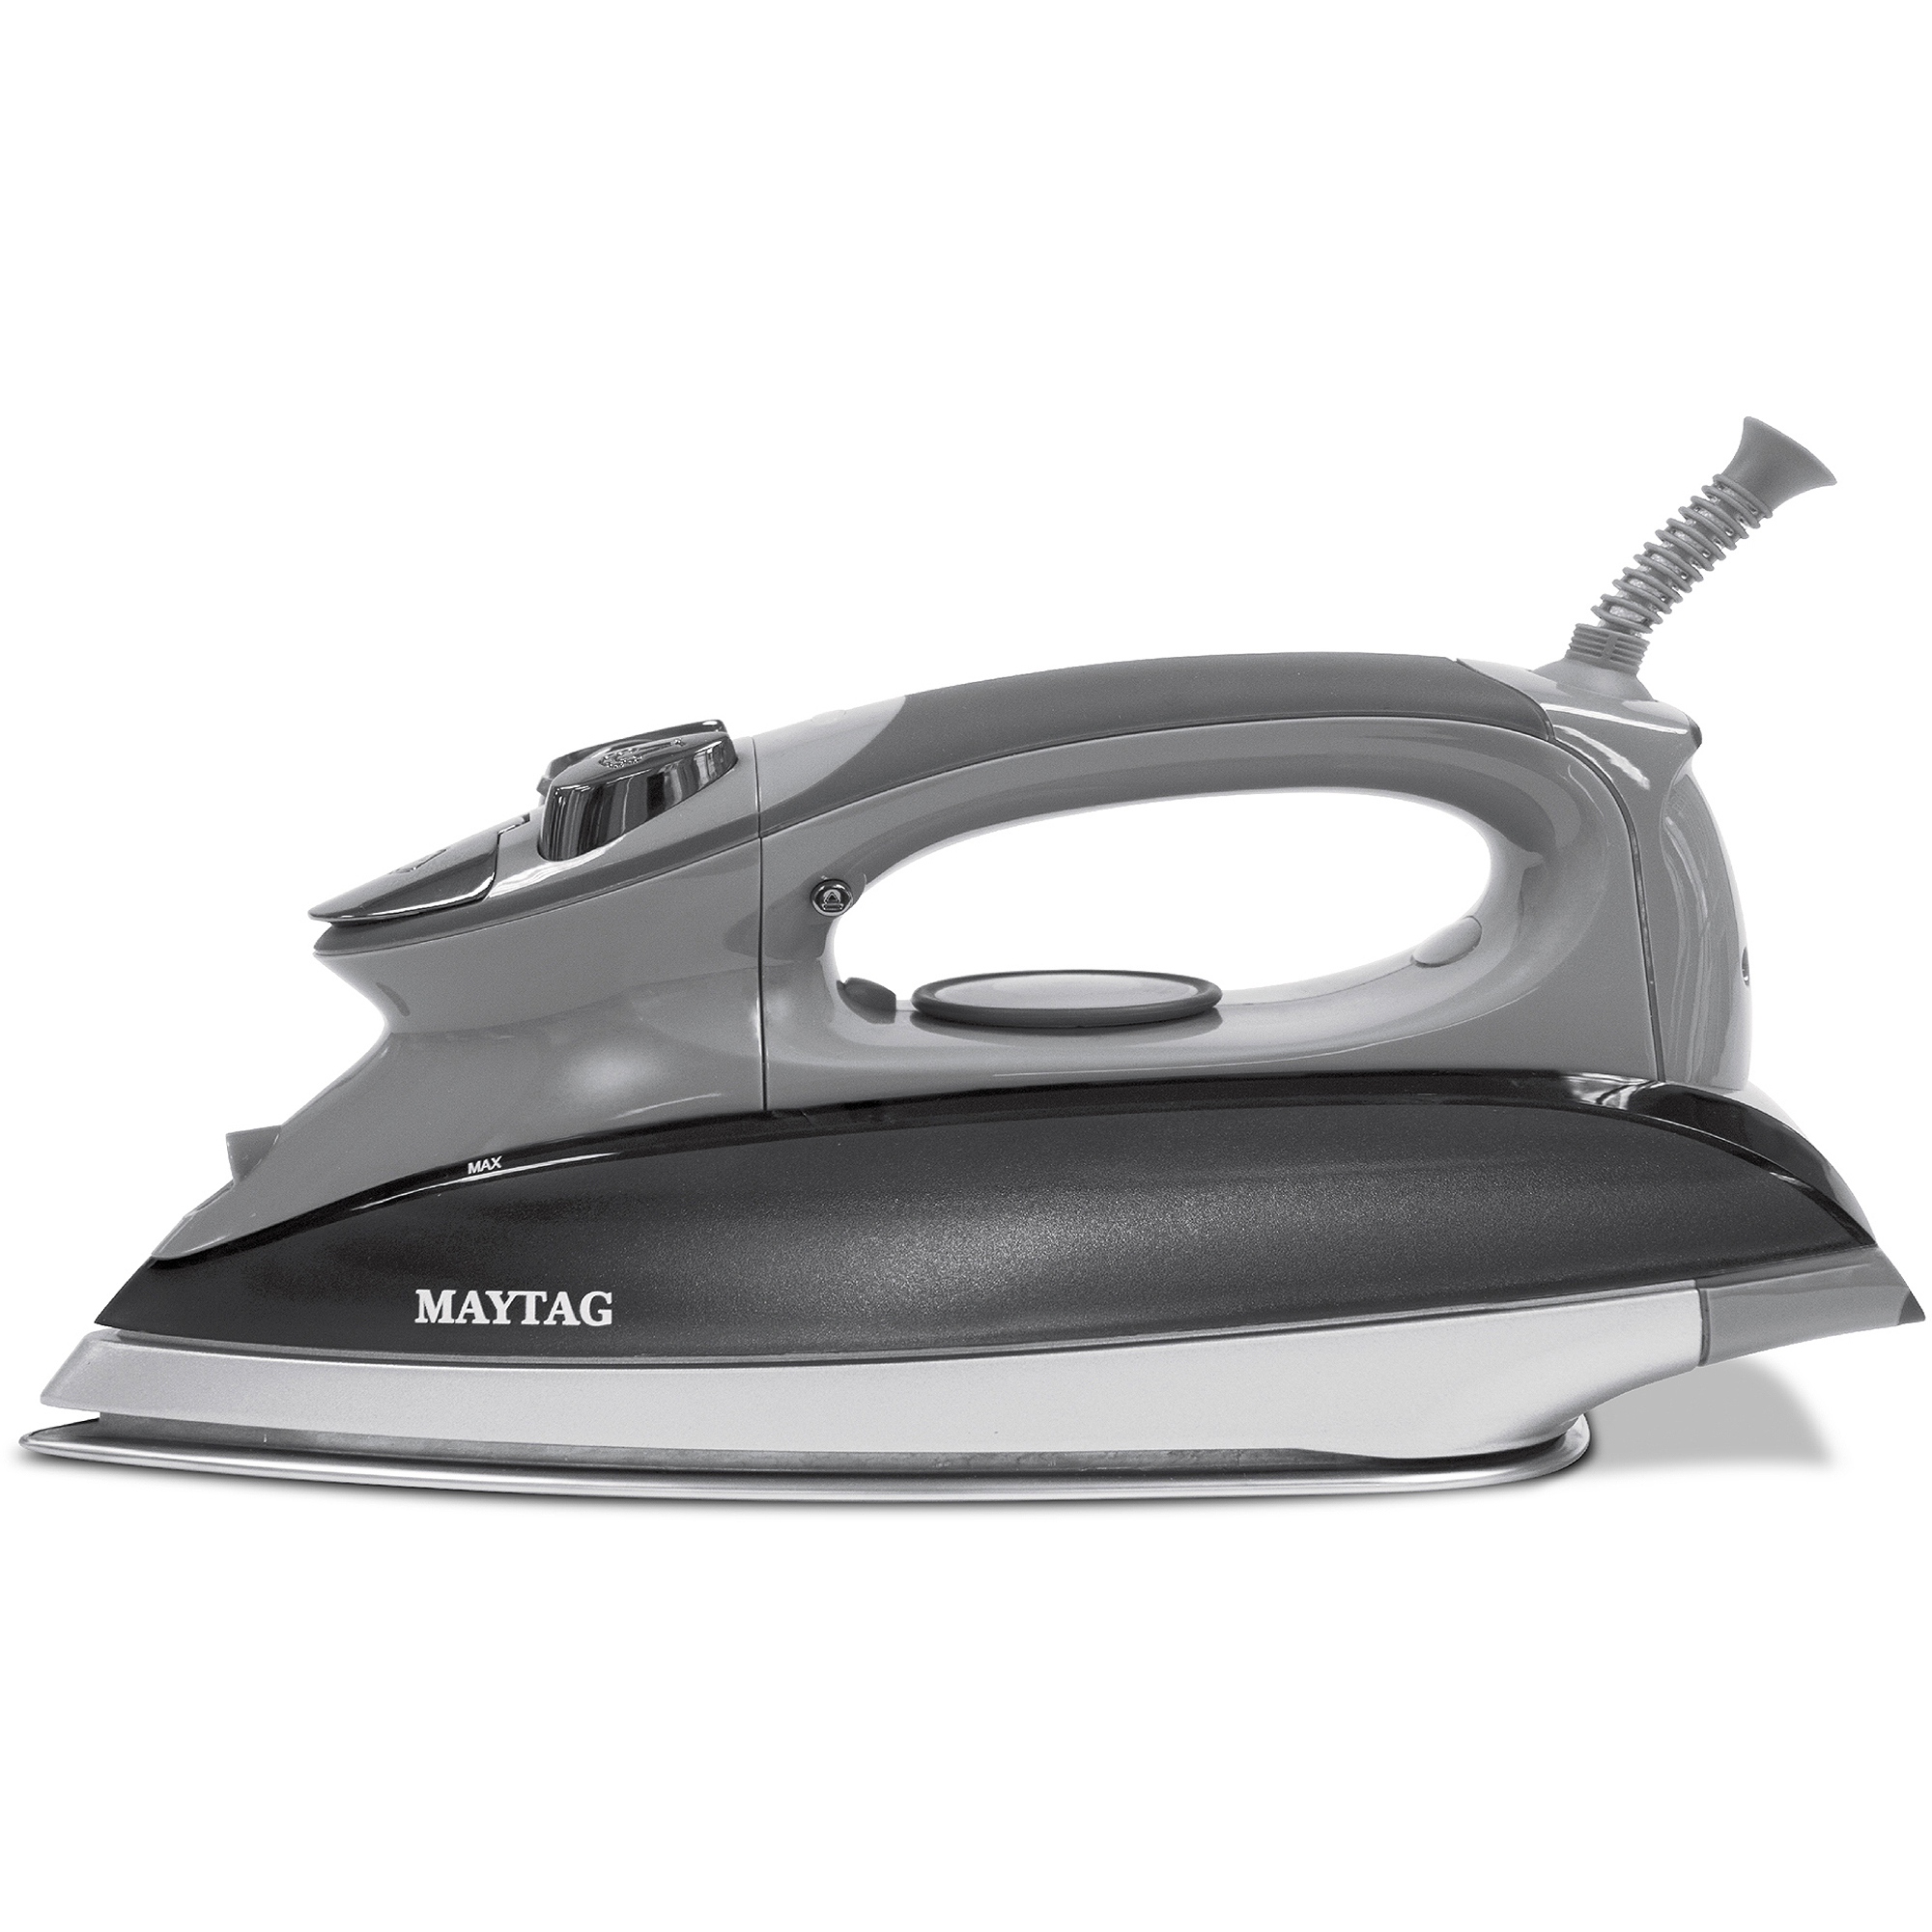 Maytag Analog SmartFill Iron with Tangle-Free Cord, Gray